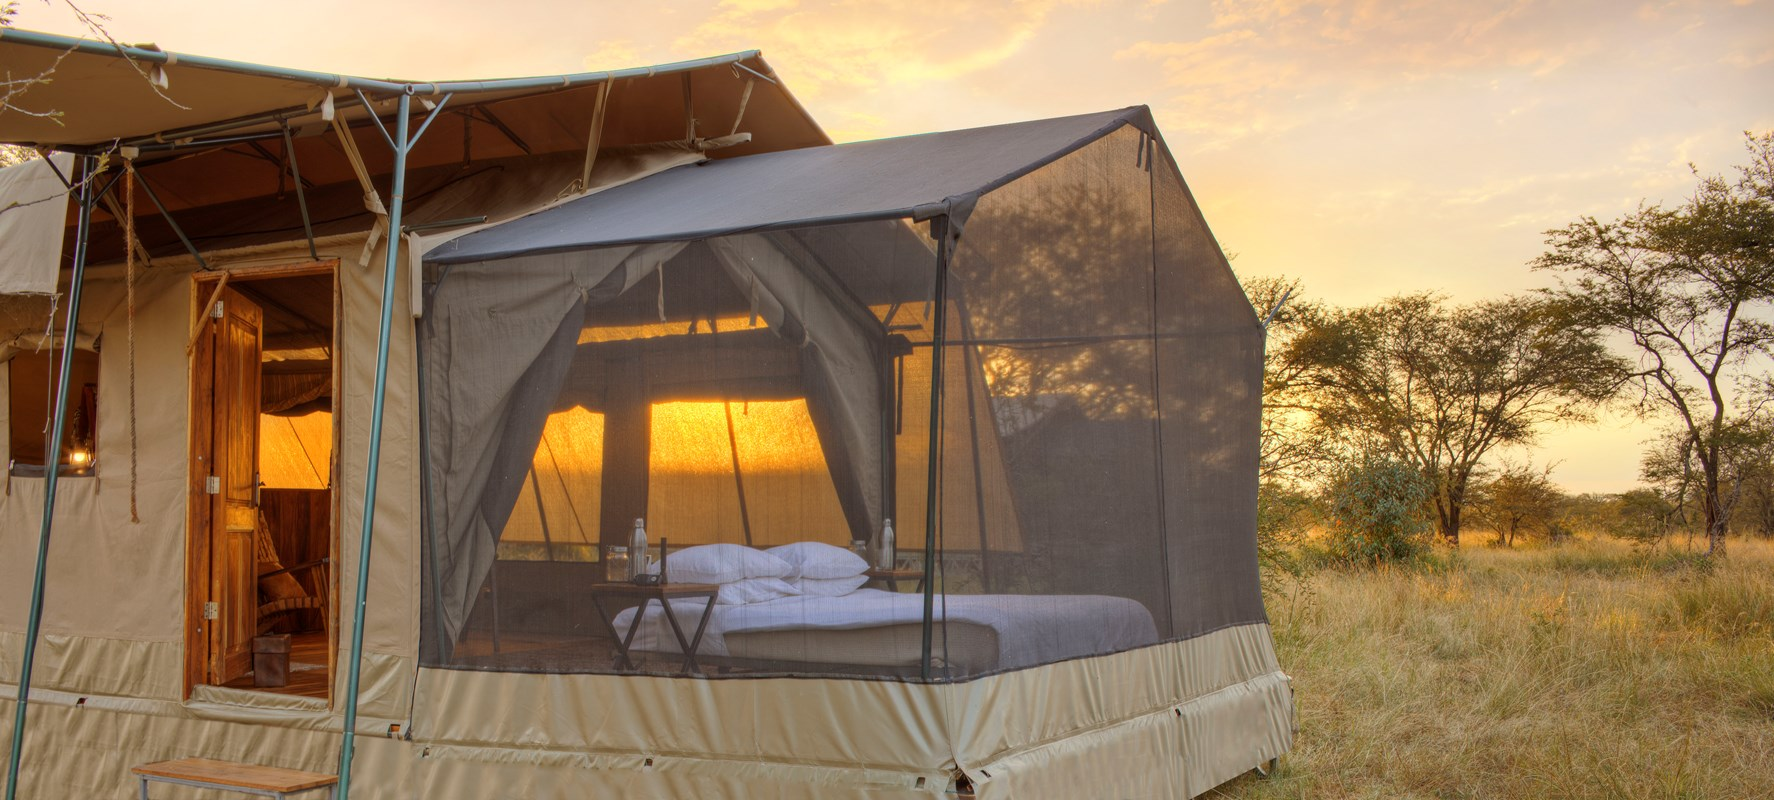 3. Olakira Star Gazing Tent, Set Up For Guest To Spend The Night Under The Stars Reduced Size